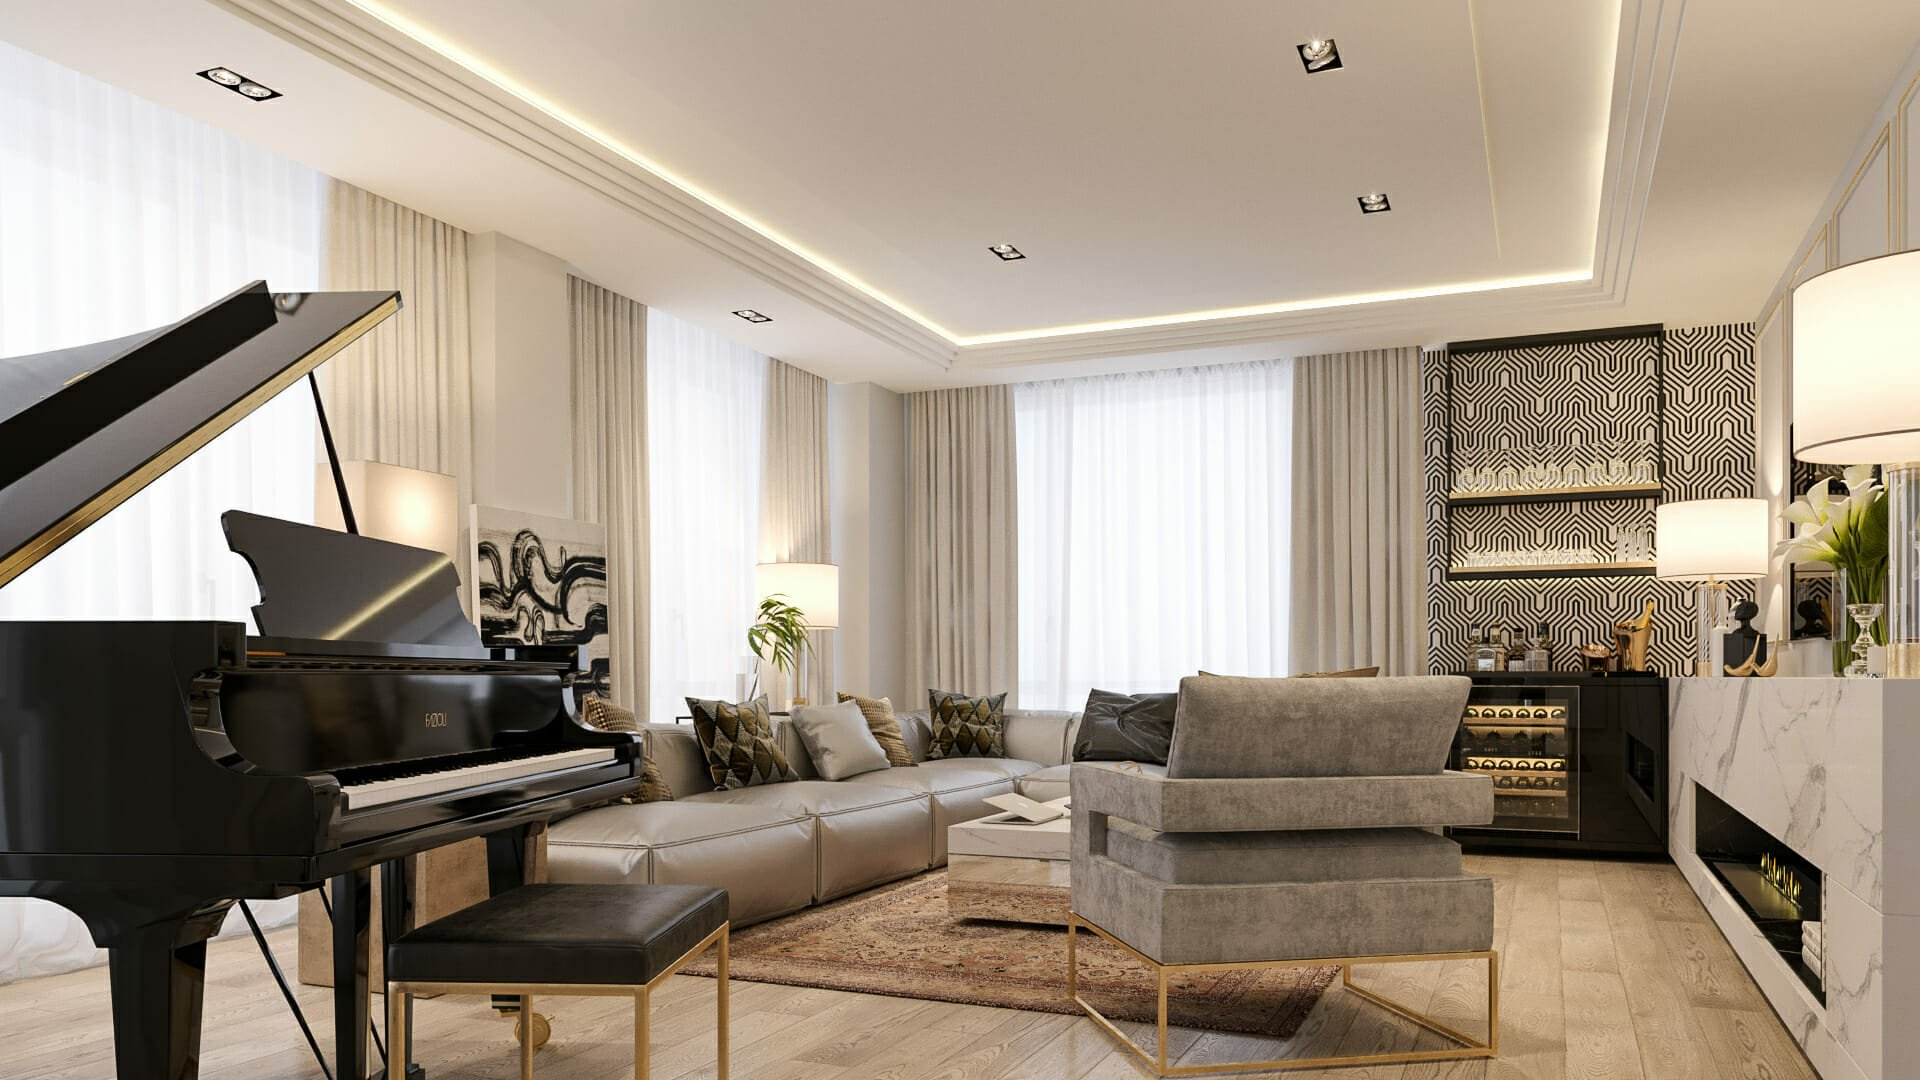 Luxury living room design for entertaining